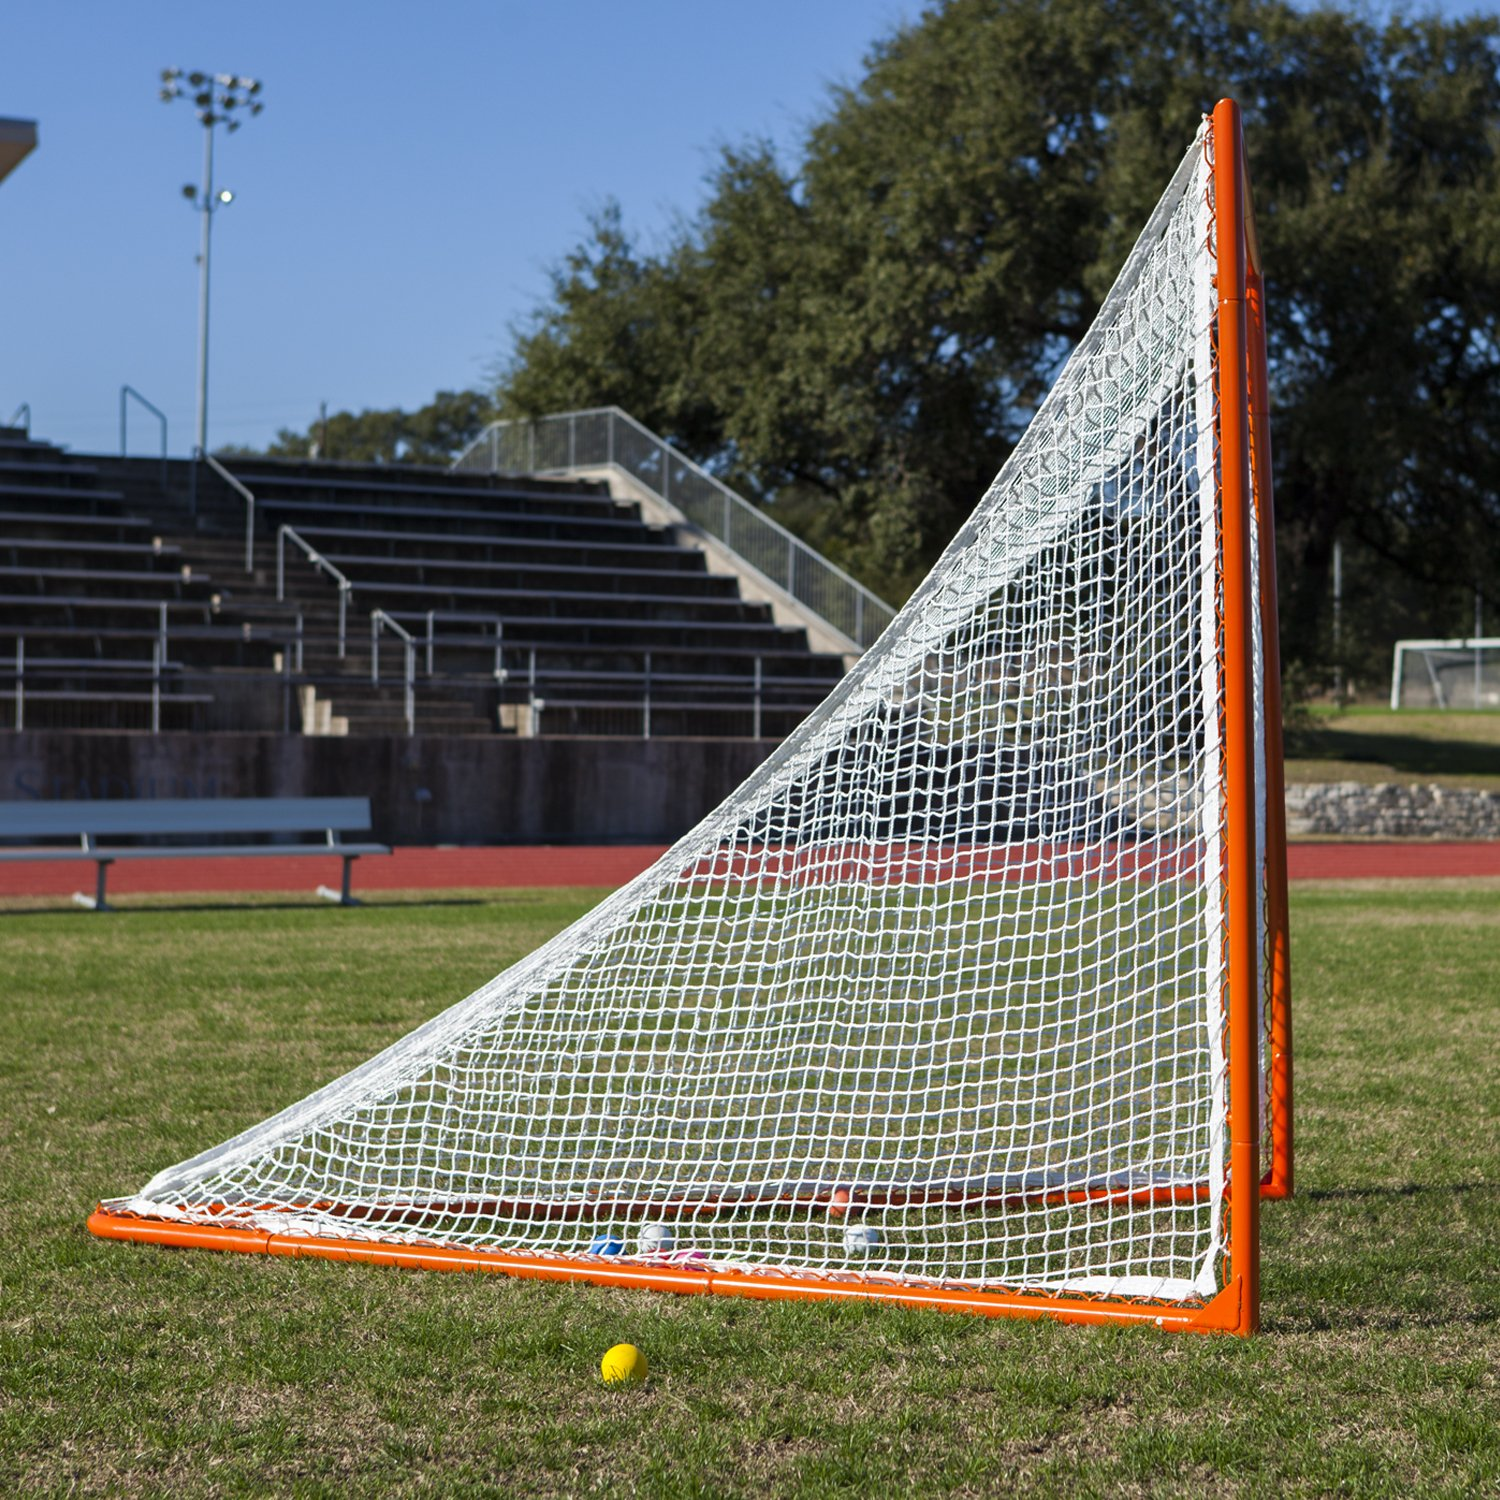 amazon com champion sports professional lacrosse goals 6x6 feet